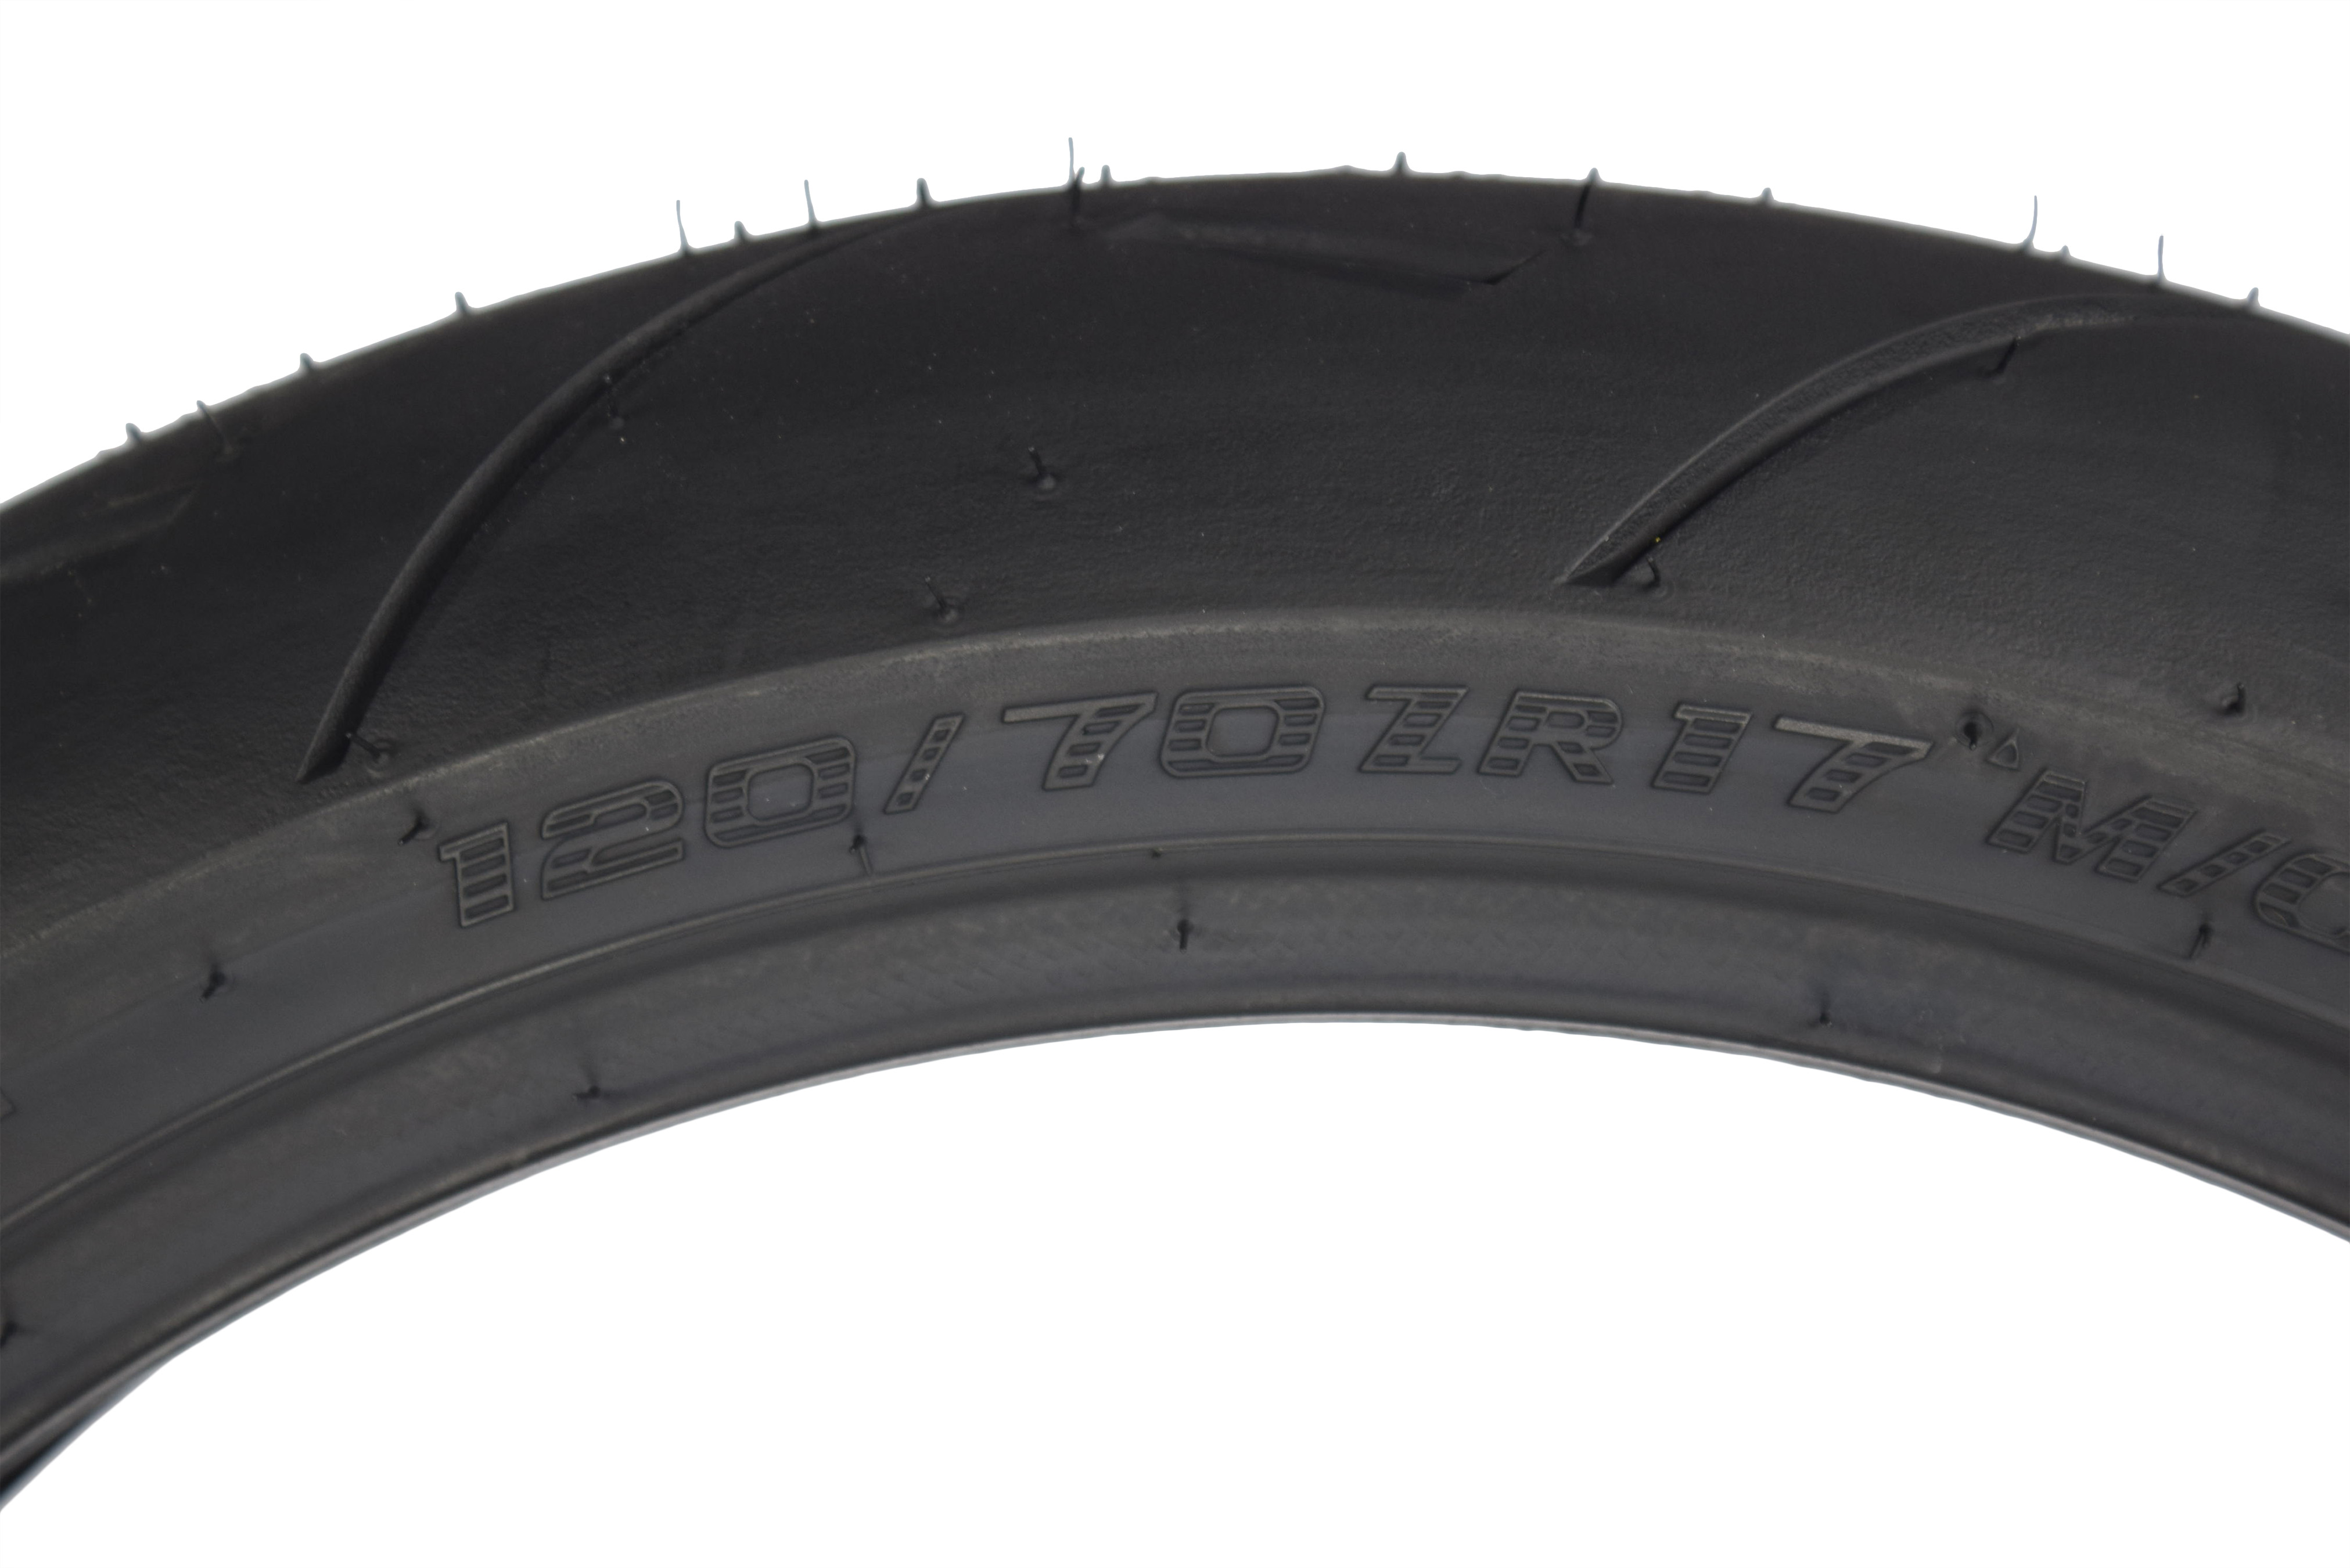 Full-Bore-120-70-17-F-190-50-17-R-Radial-Sportbike-Motorcycle-Tires-image-3